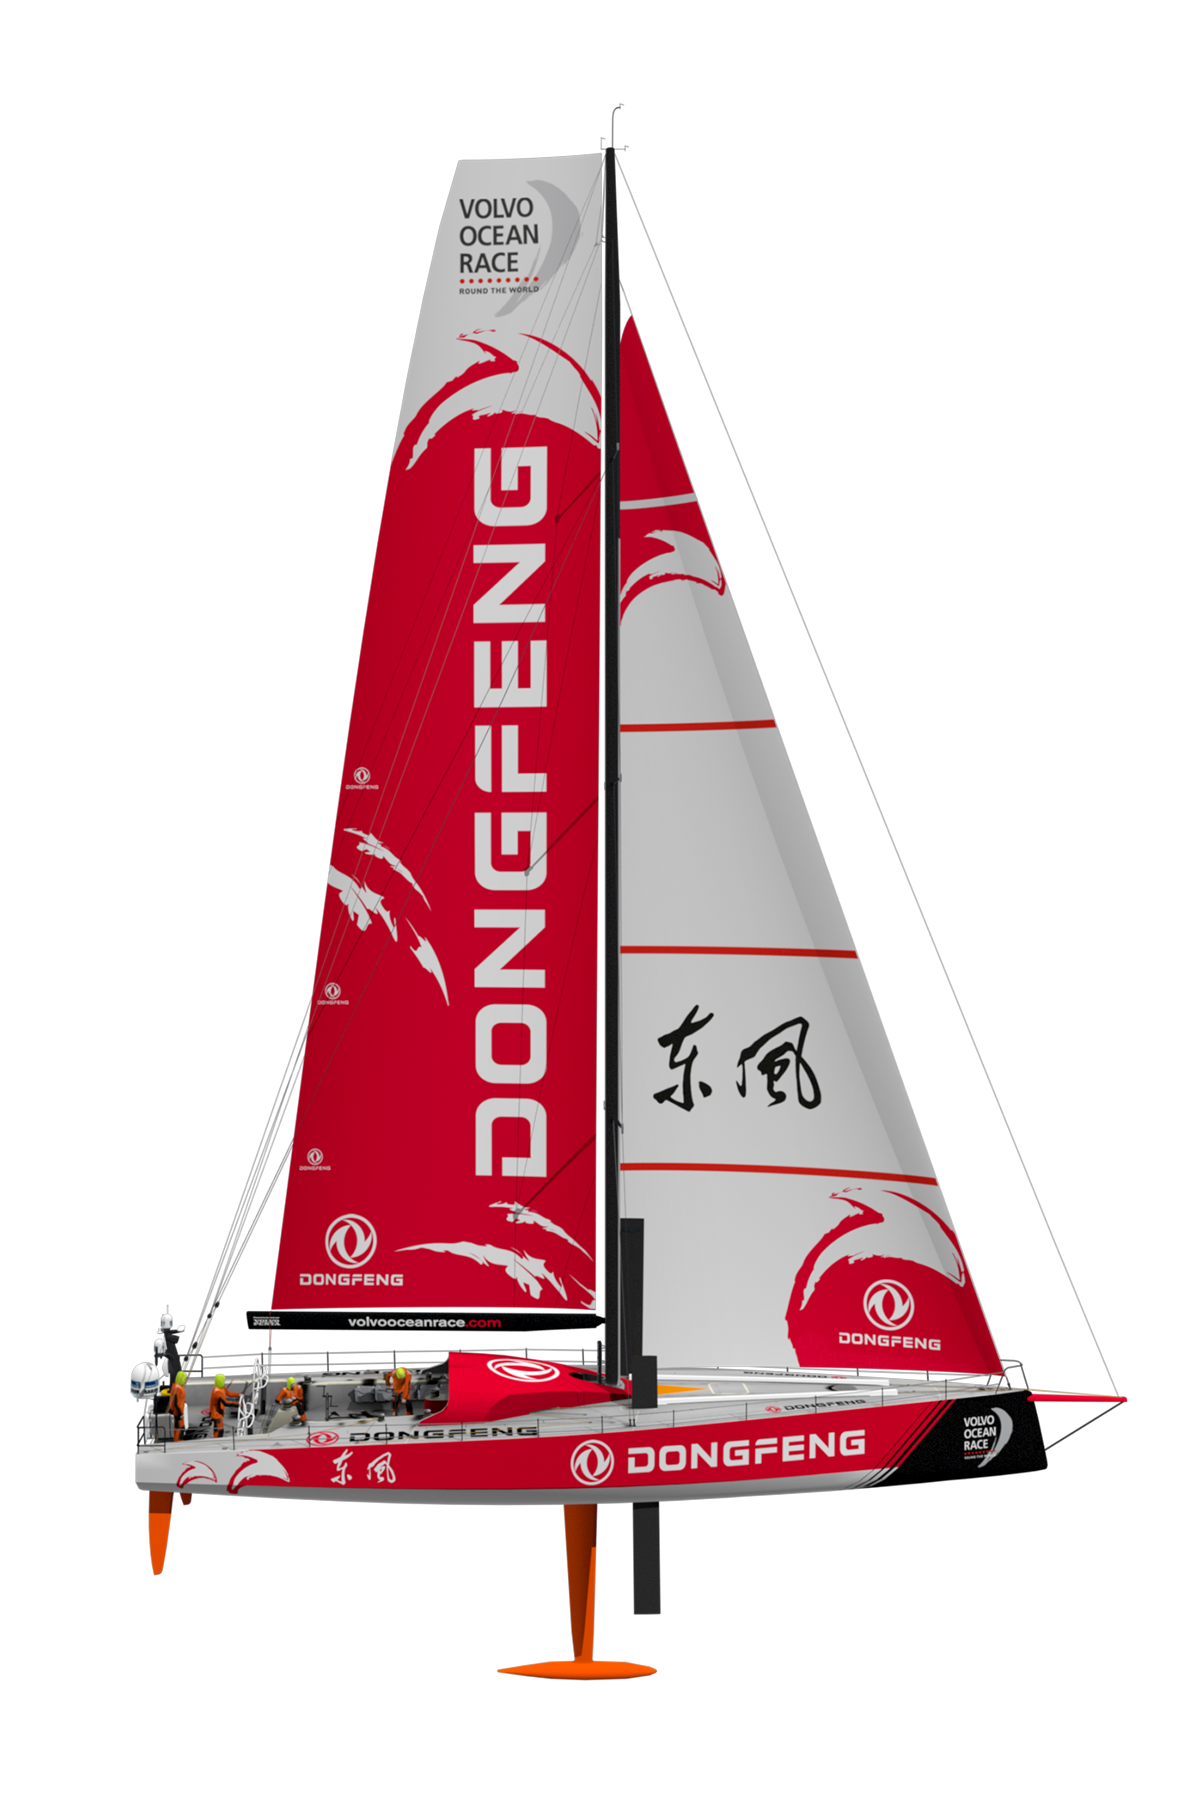 Dongfeng Race Team - Volvo Ocean Race 2017-18